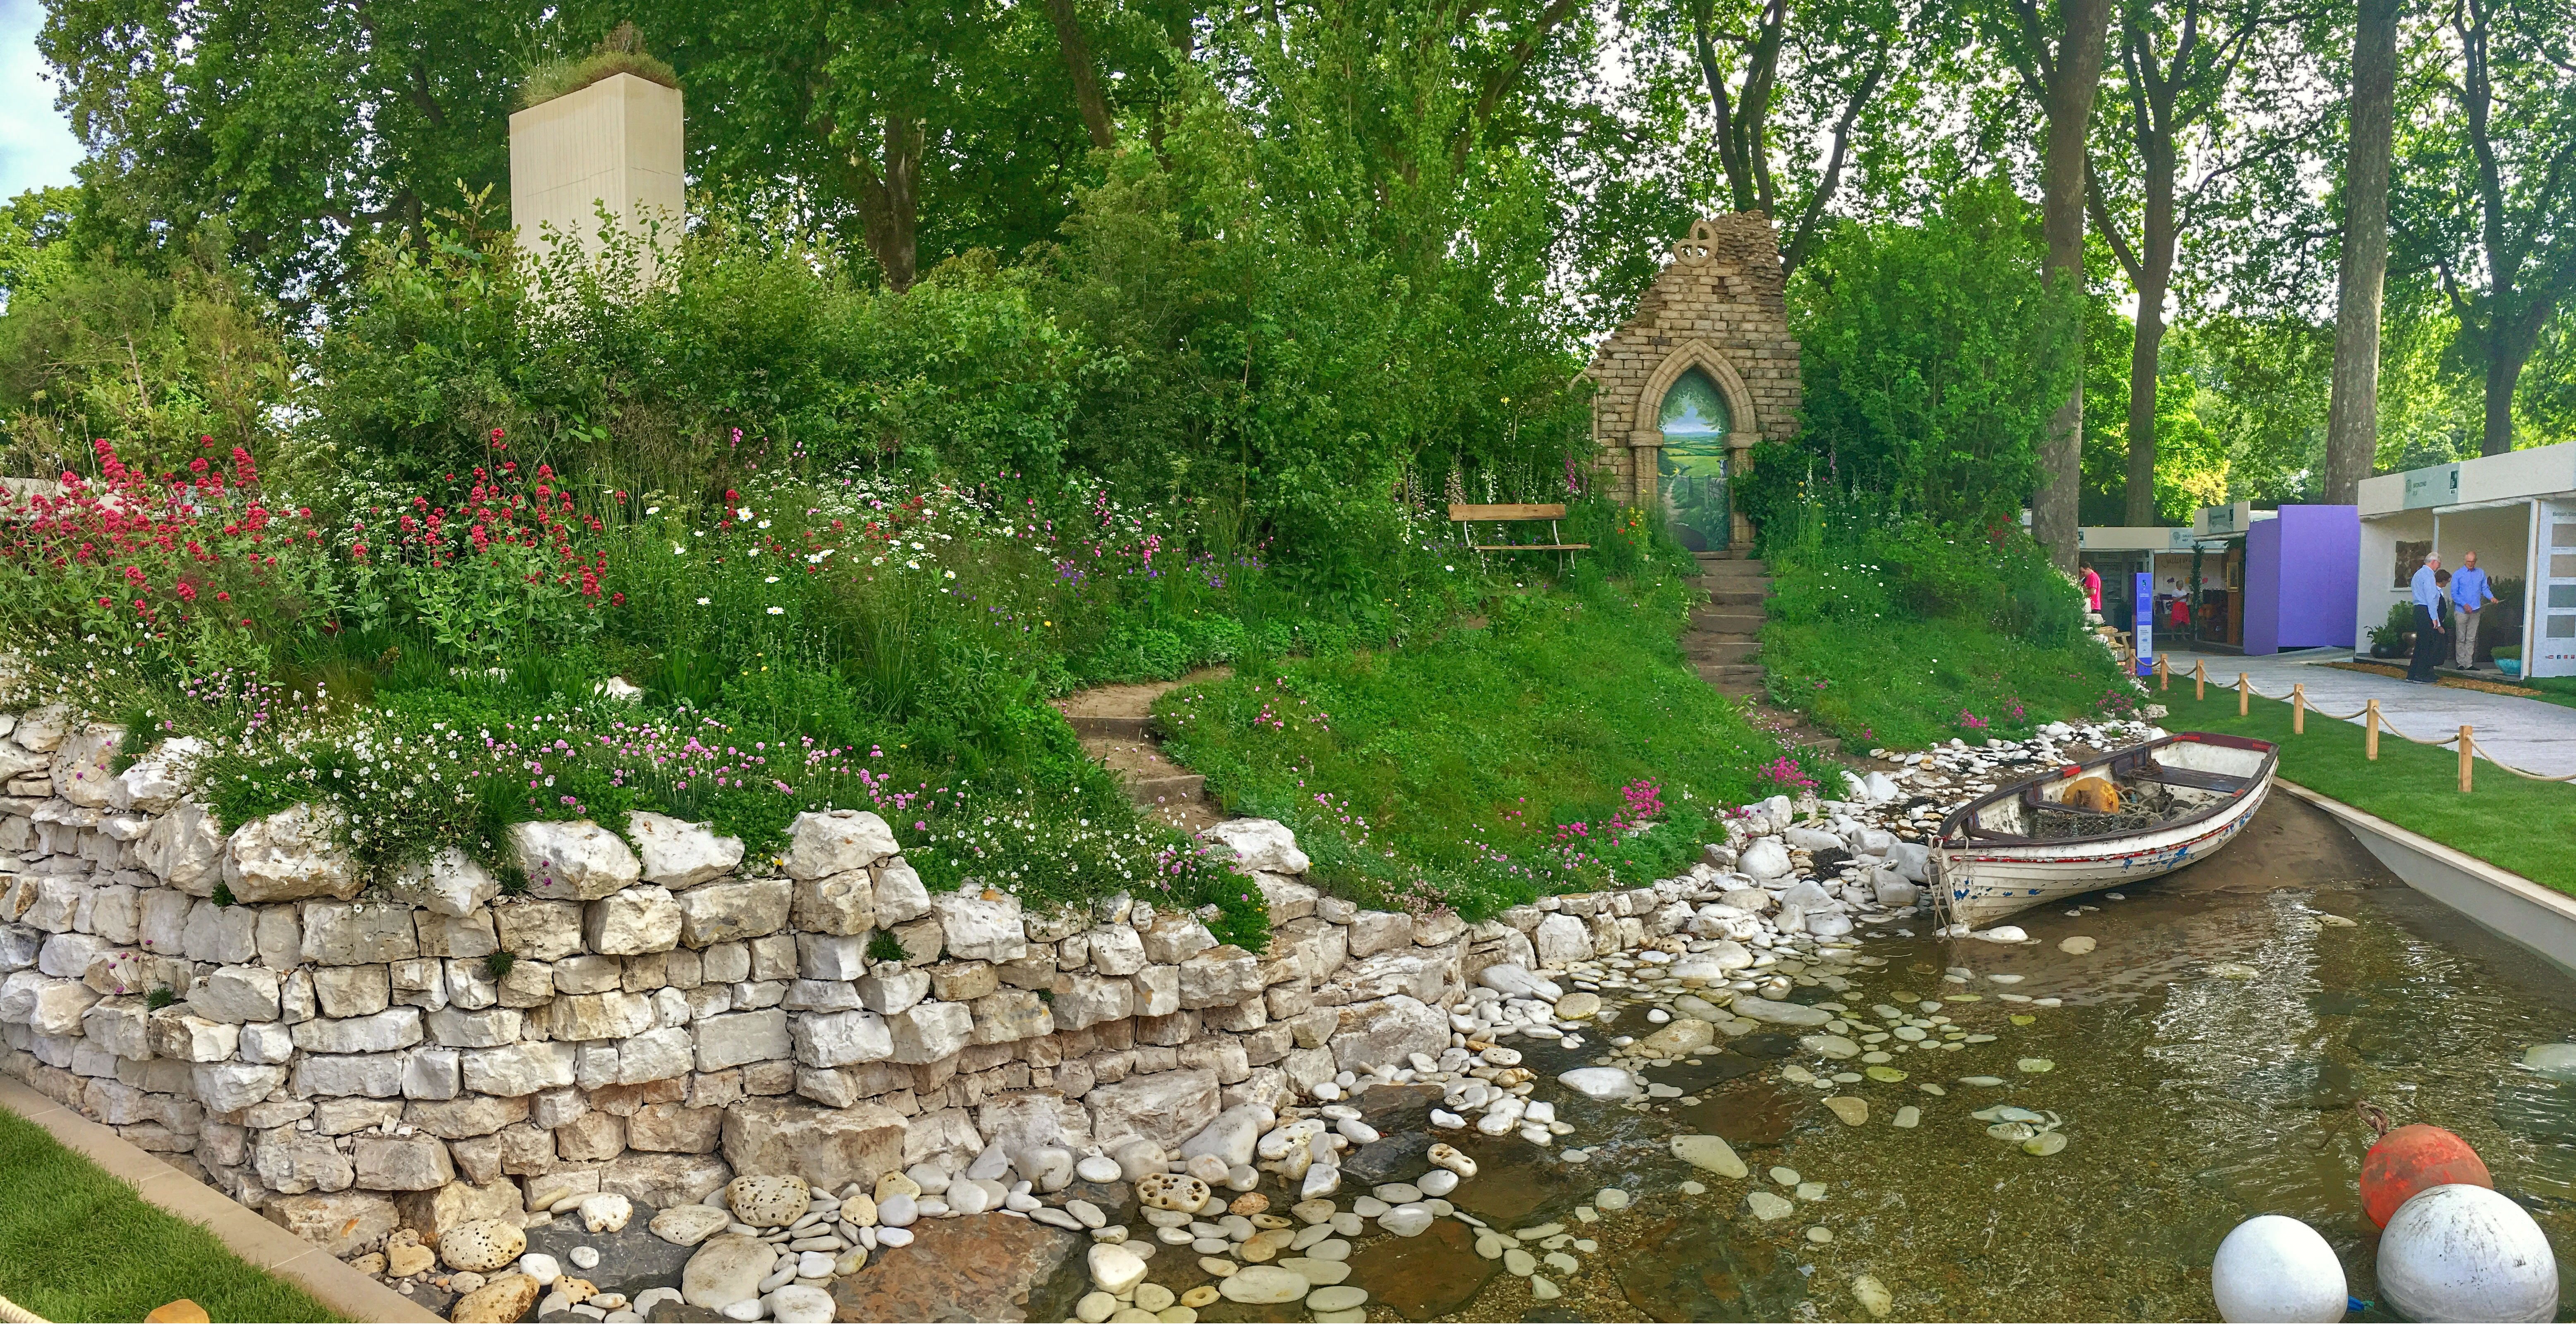 Rhs chelsea flower show gardens welcome to yorkshire for Garden design yorkshire